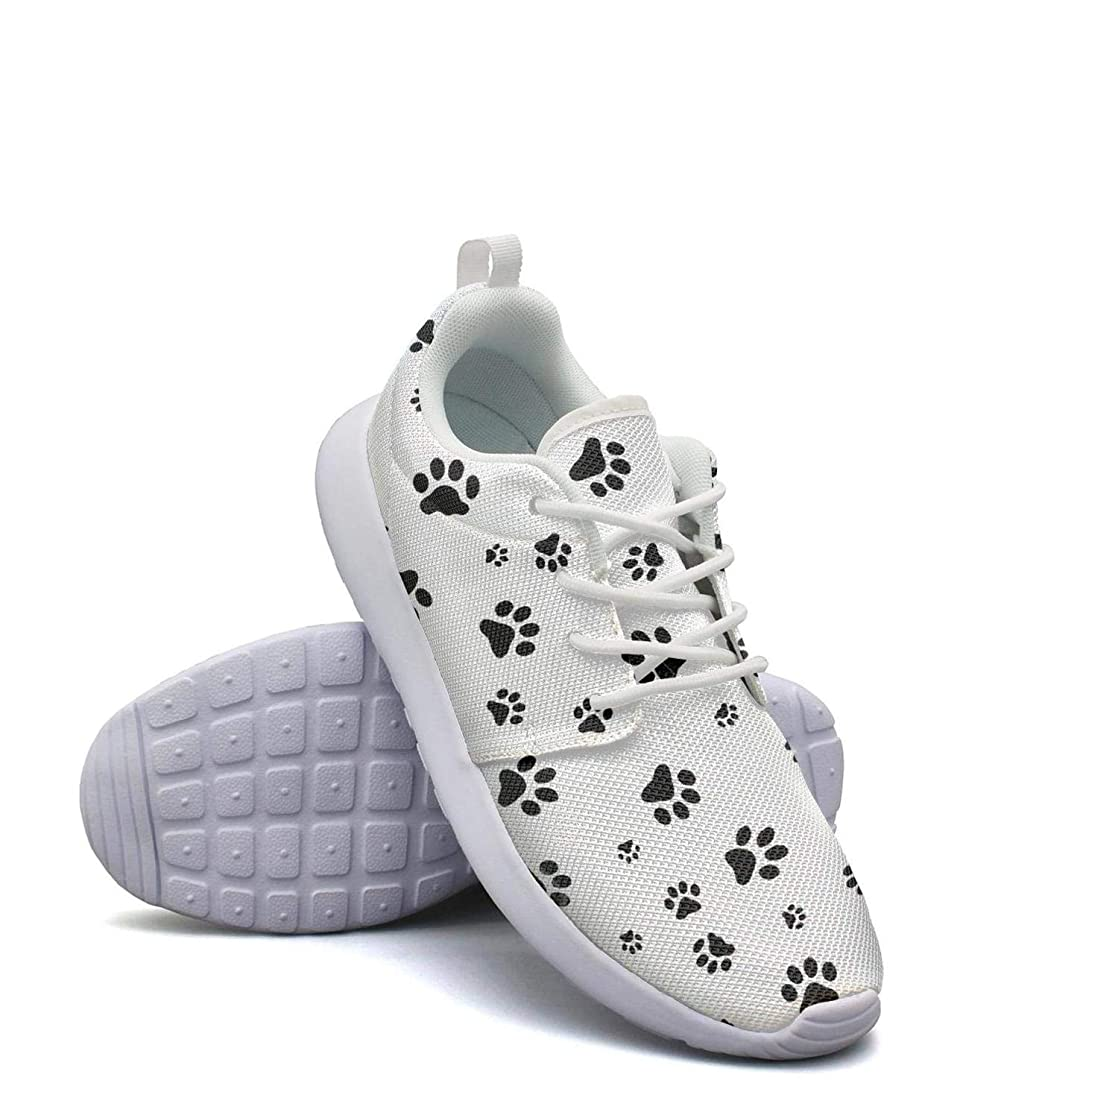 Scsdw Wdrt Fashion Sneakers Women Dachshund Dog Wallpaper Pattern Lightweight Athletic Walking Running Slip-on Shoes cczrcrcw31663